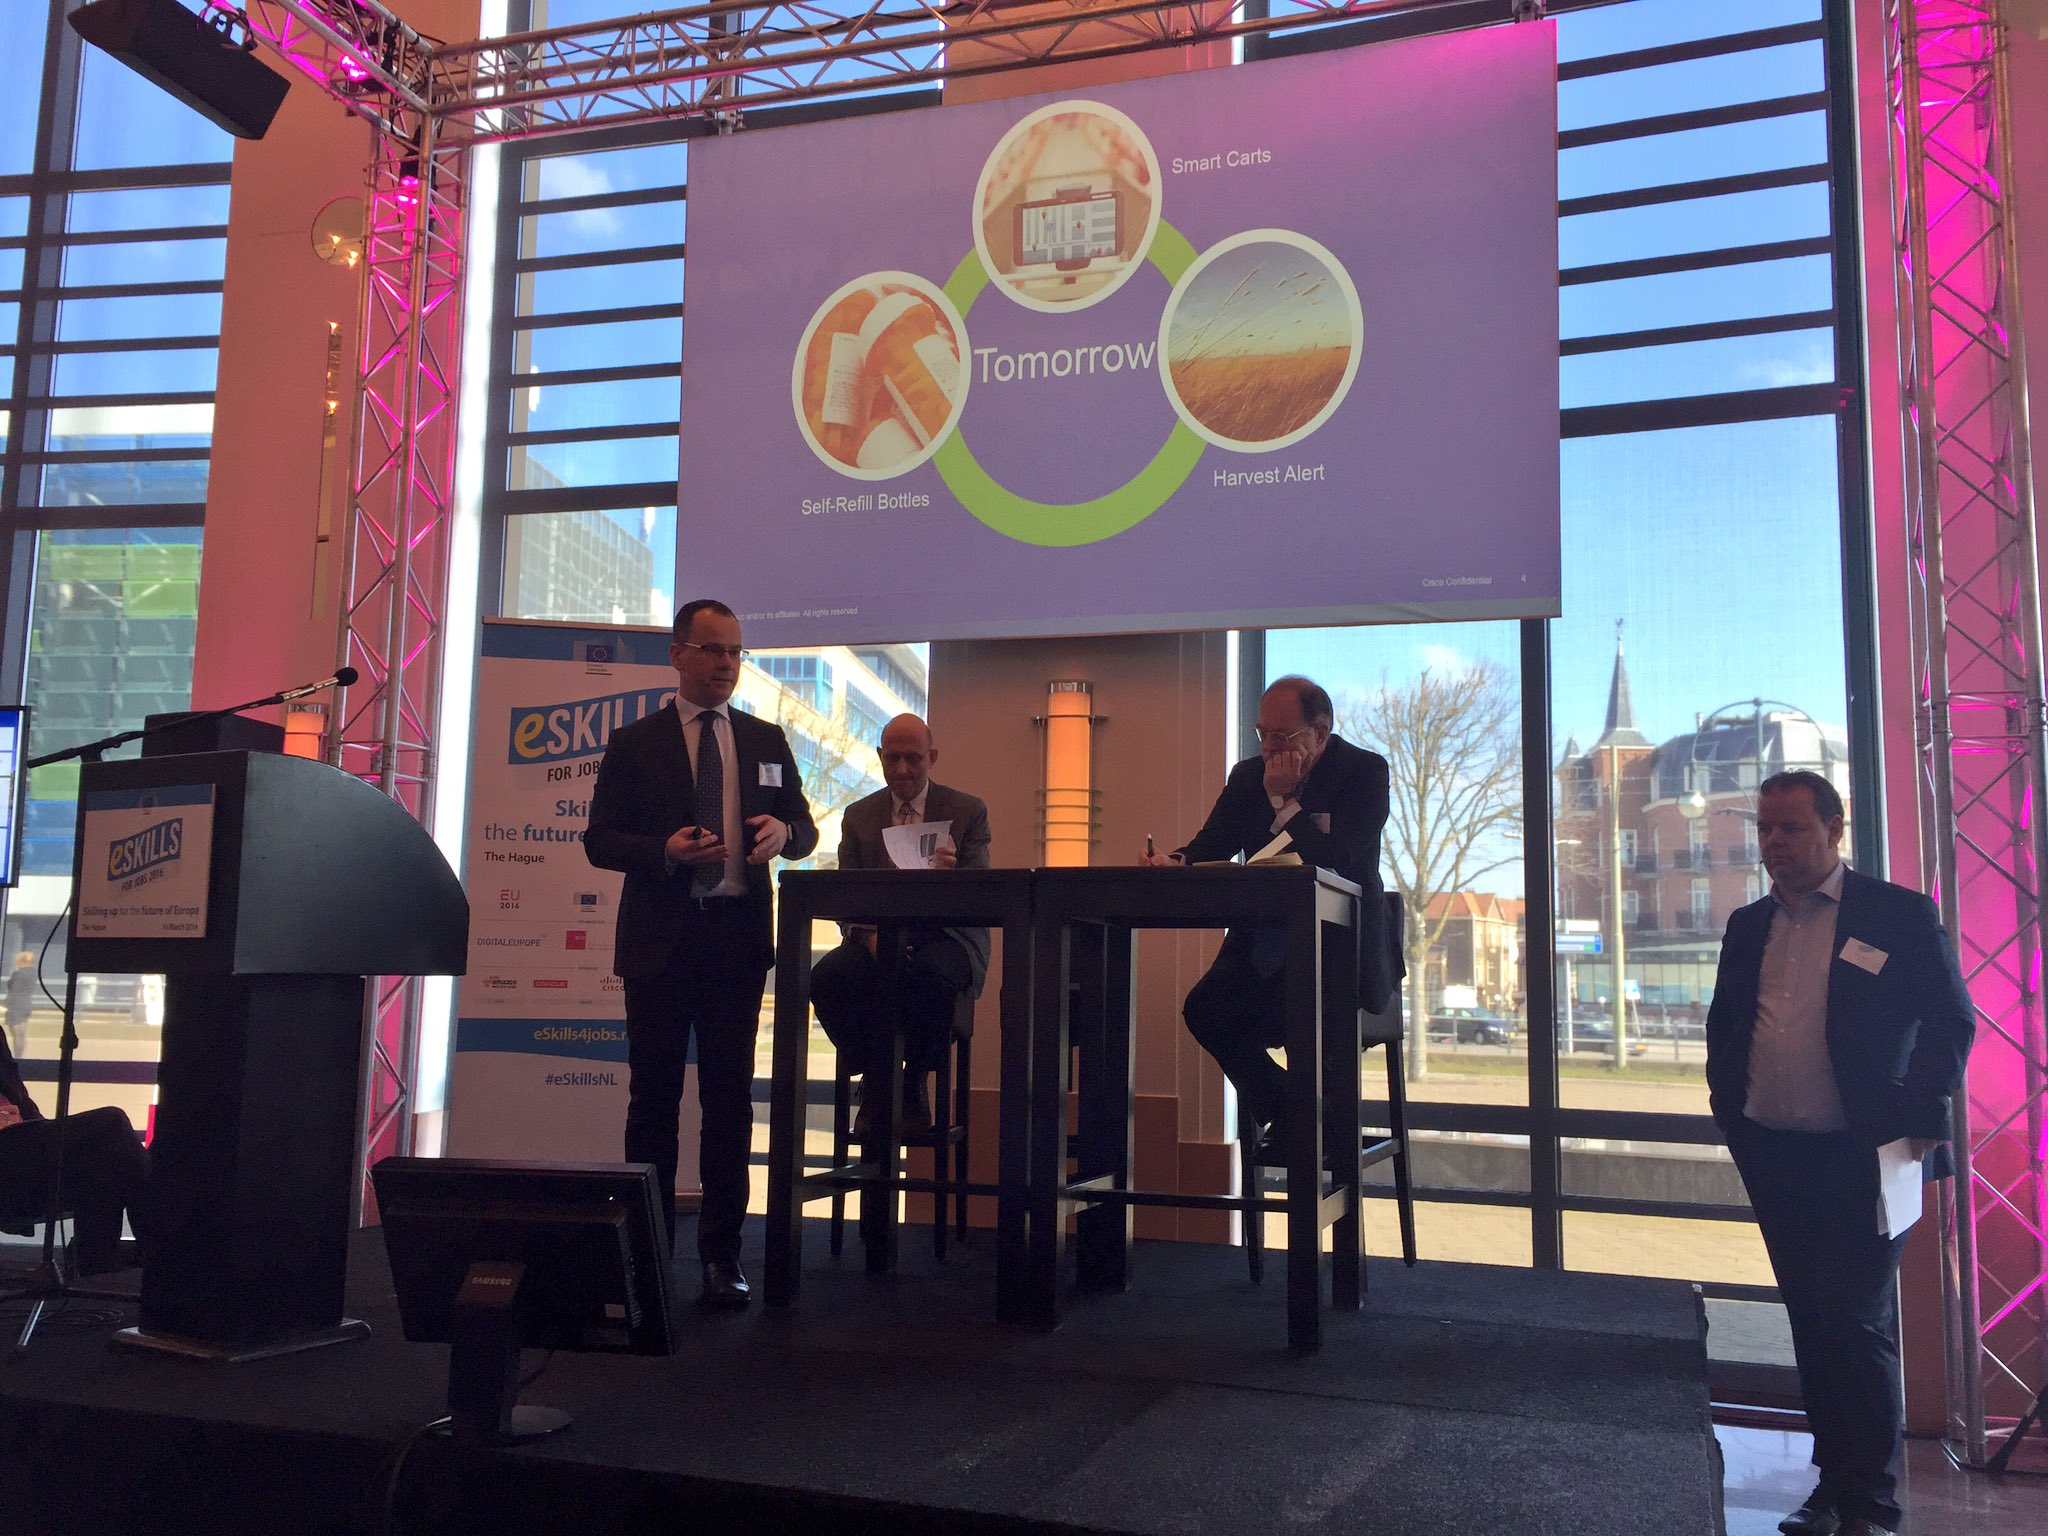 """Public & private partnership #PPP across sectors come together to enable #digitisation of #EU"" @ppluta #eSkillsNL https://t.co/8DE0PJqKaT"